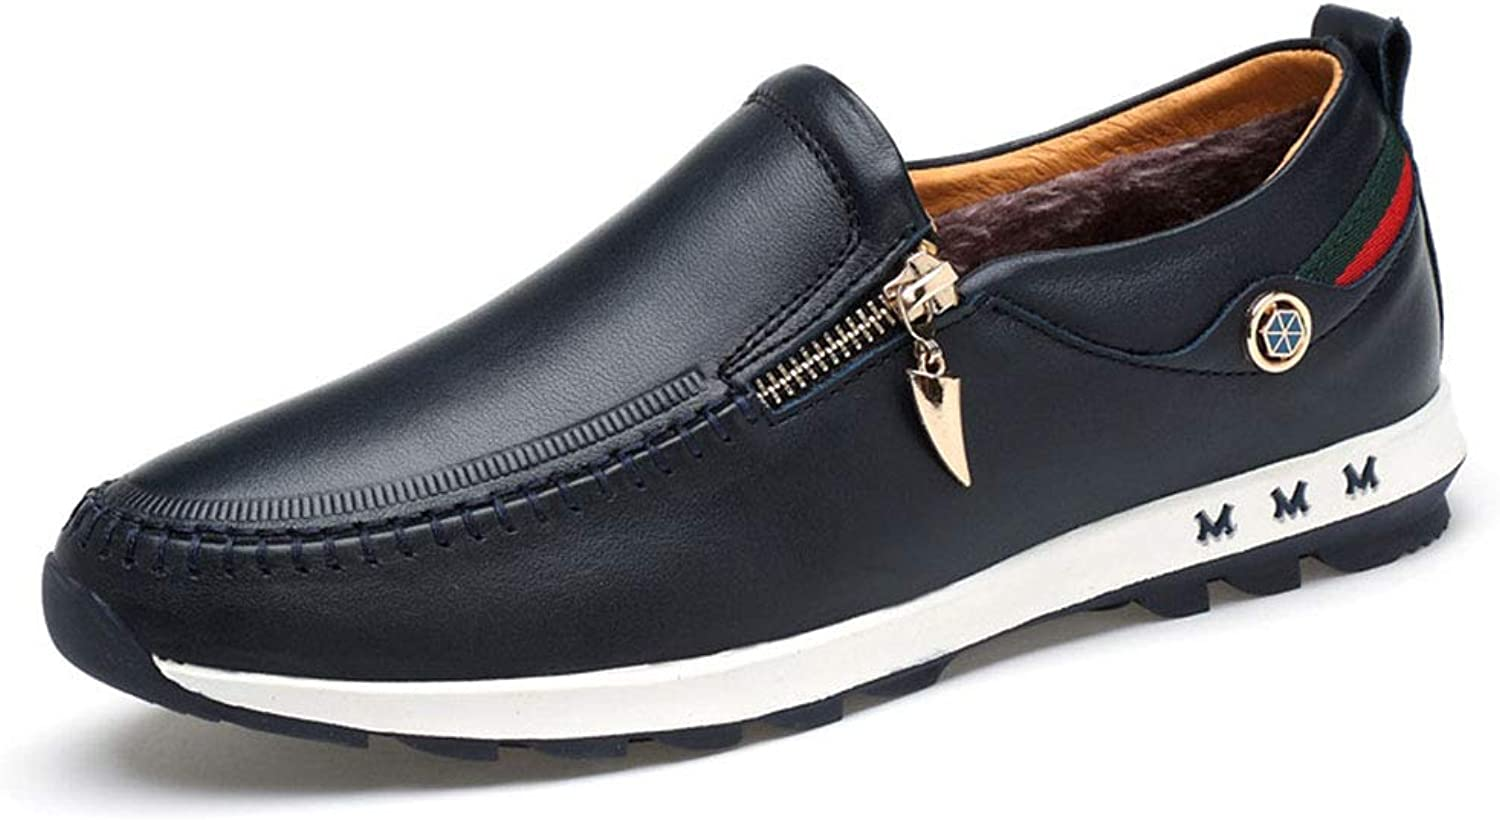 Men's Leather shoes Business Casualleather shoes Winter New Non Slip Plus Velvet Formal shoes Driving shoes,B,41